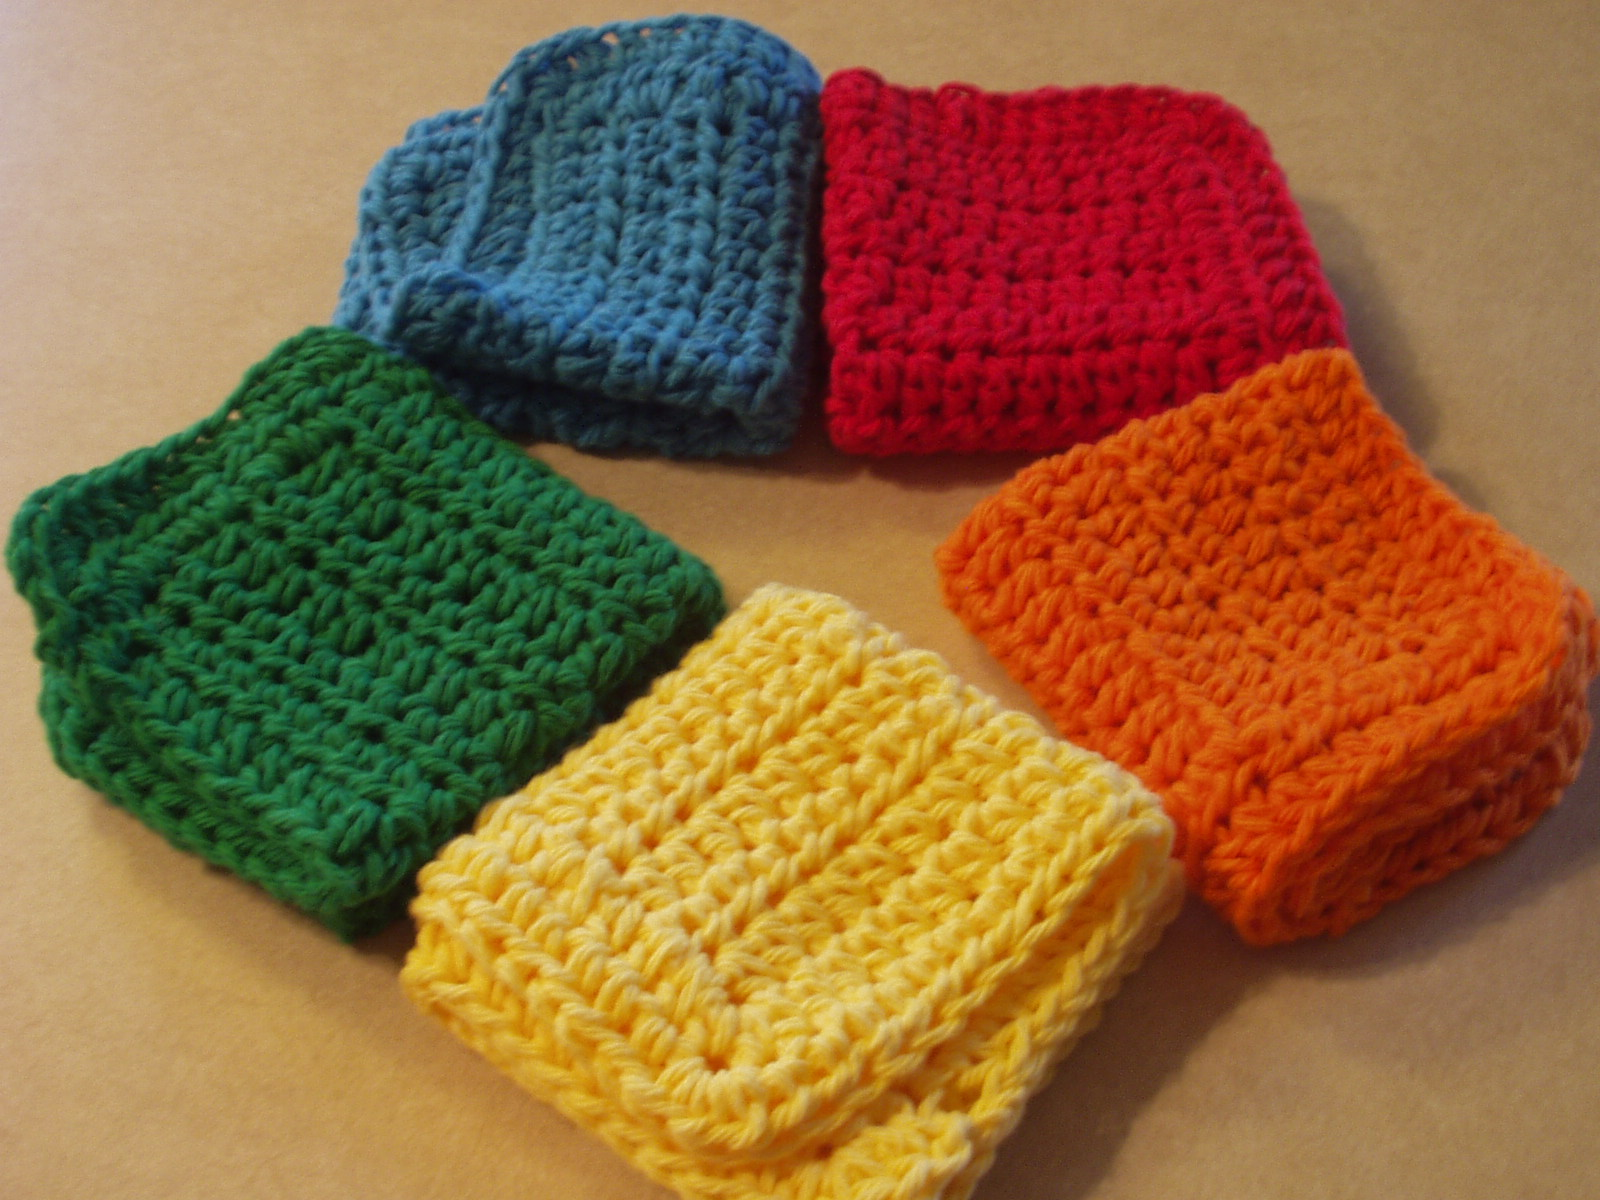 Crocheting Easy Patterns : EASY CROCHET DISHCLOTH PATTERNS - Patterns 2013